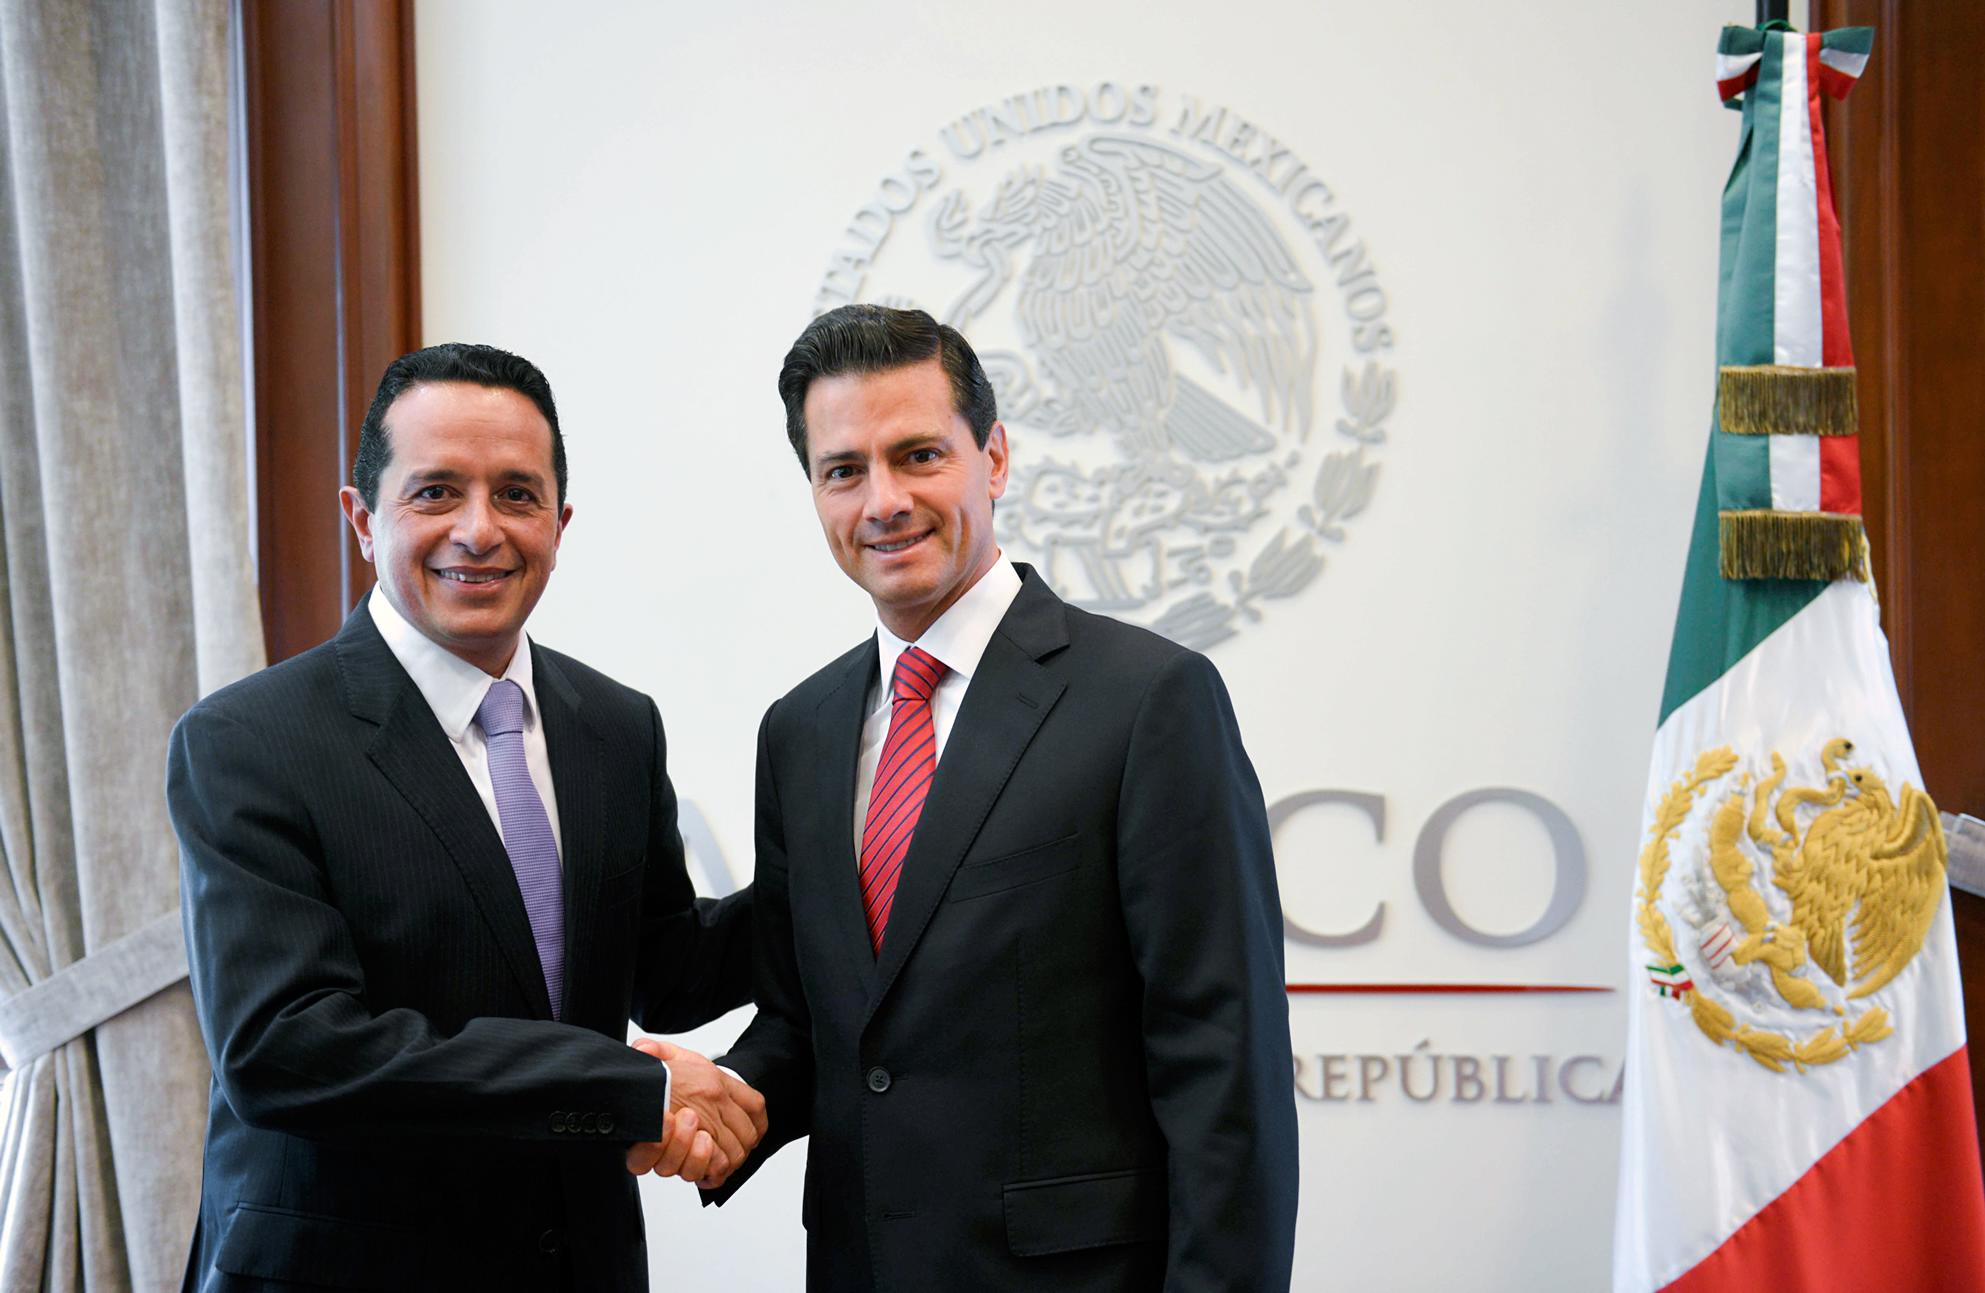 At the official Los Pinos residence, President Peña Nieto congratulated the governor elect on his victory in the June 5 elections